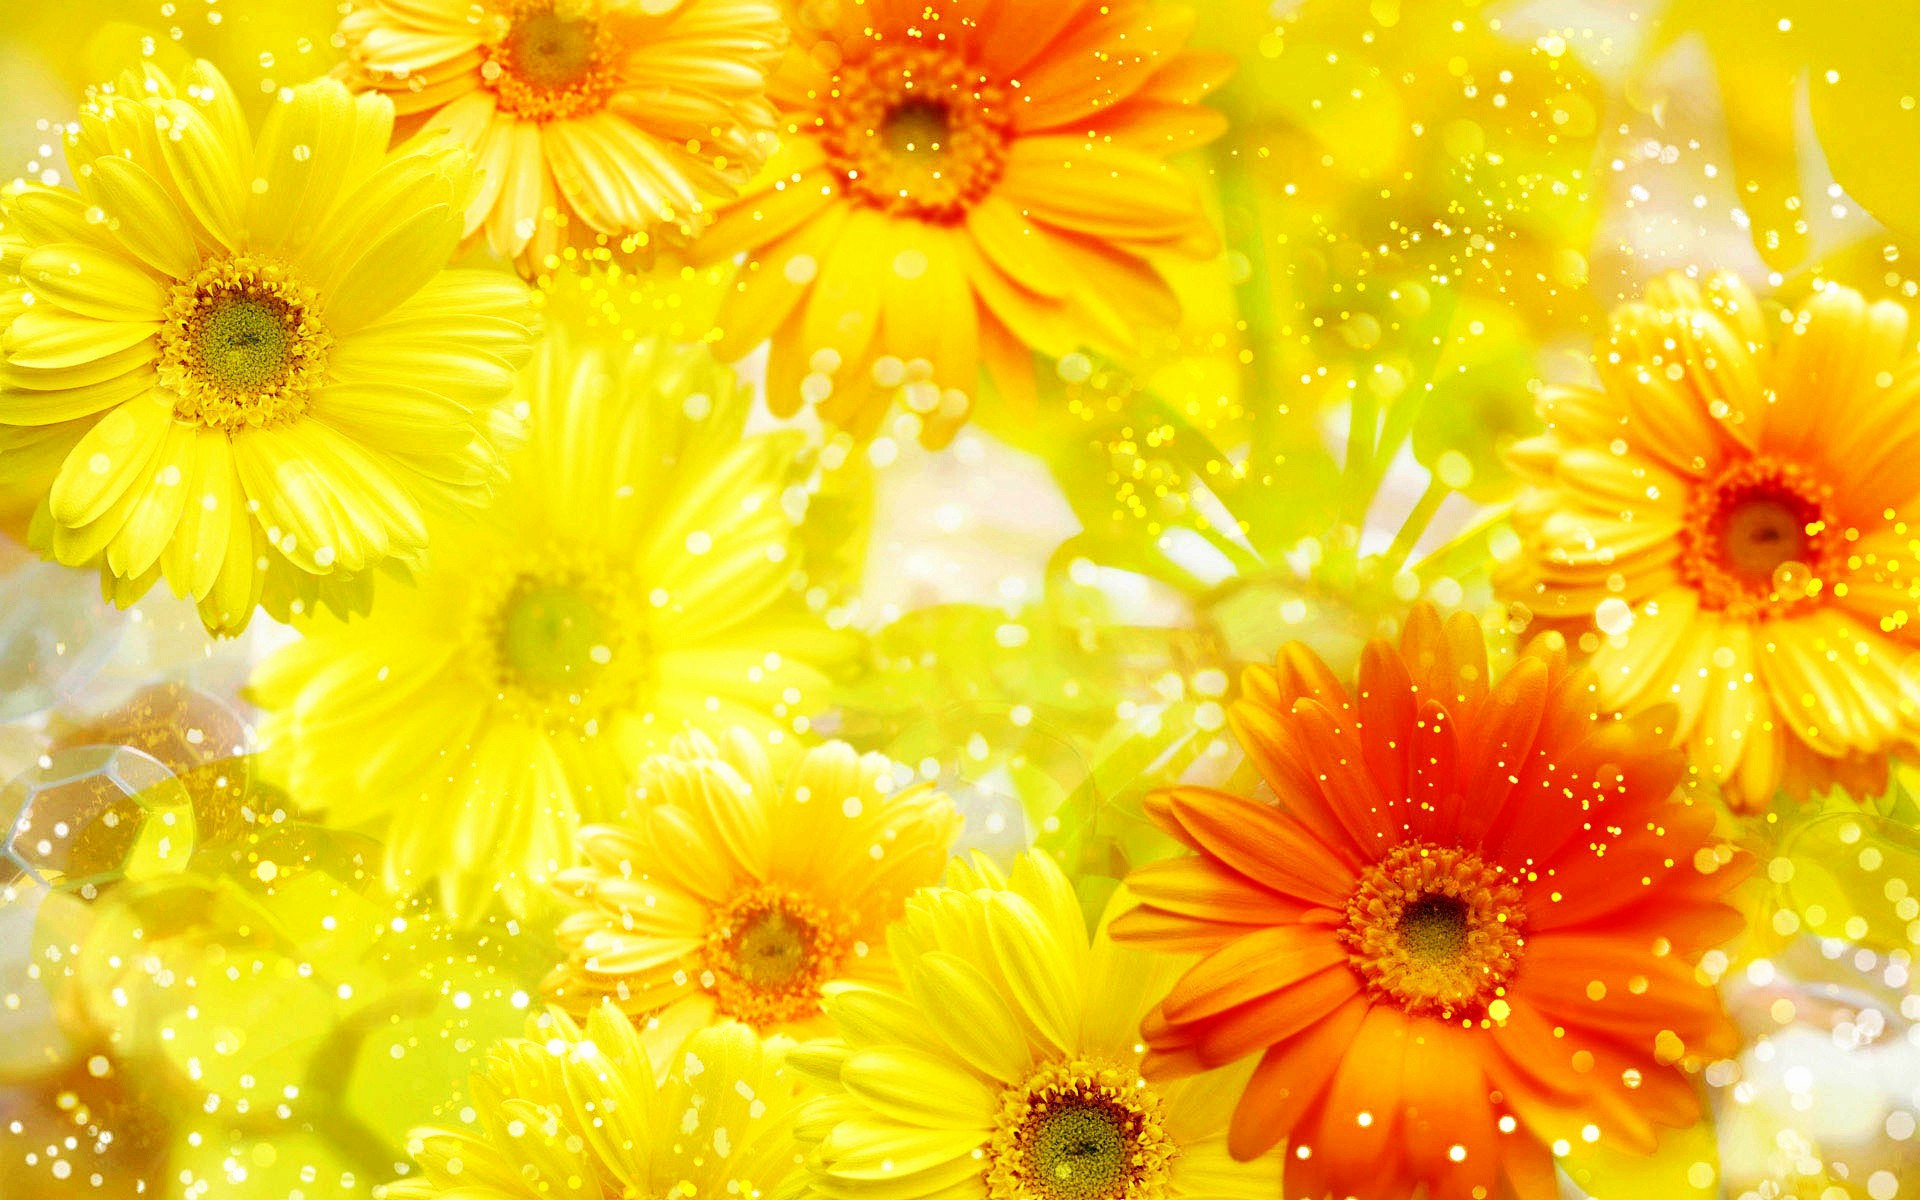 1920x1200 yellow flower wallpaper best of yellow flowers yellow and pink asthetic 3085209 hd wallpaper backgrounds download 1920x1200 yellow flower wallpaper best